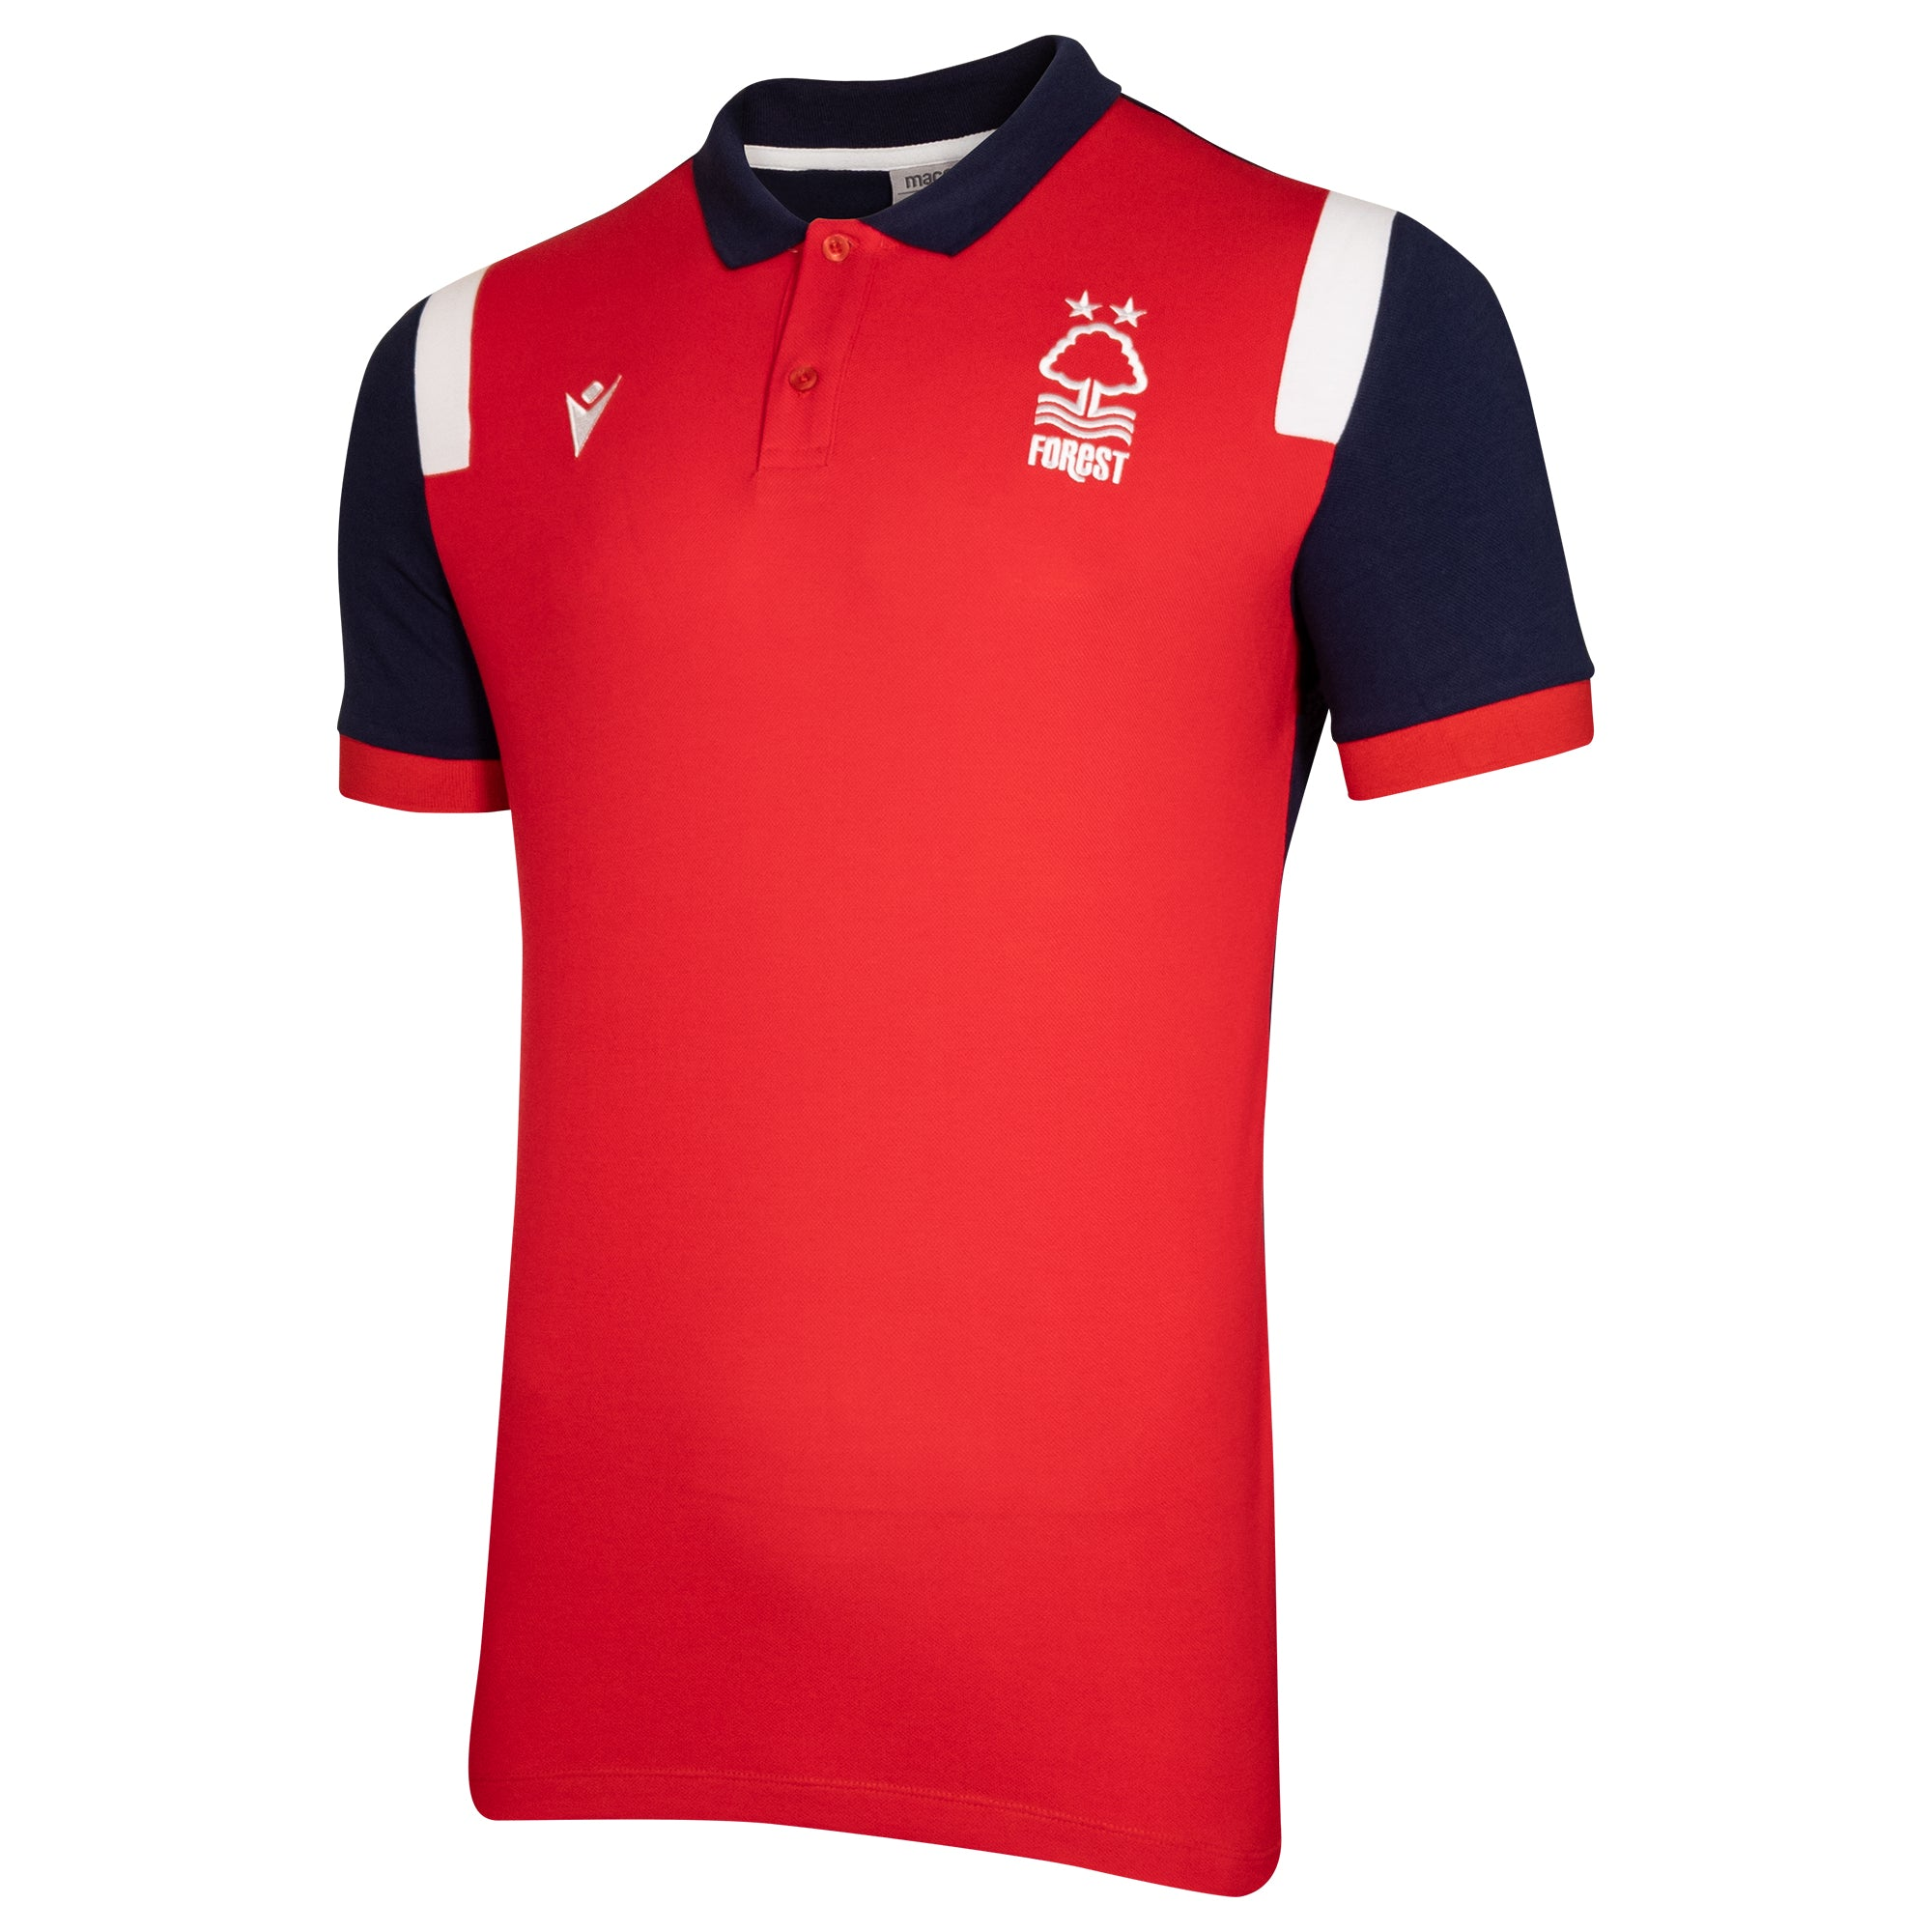 NFFC Junior Player Travel Polo 2020/21